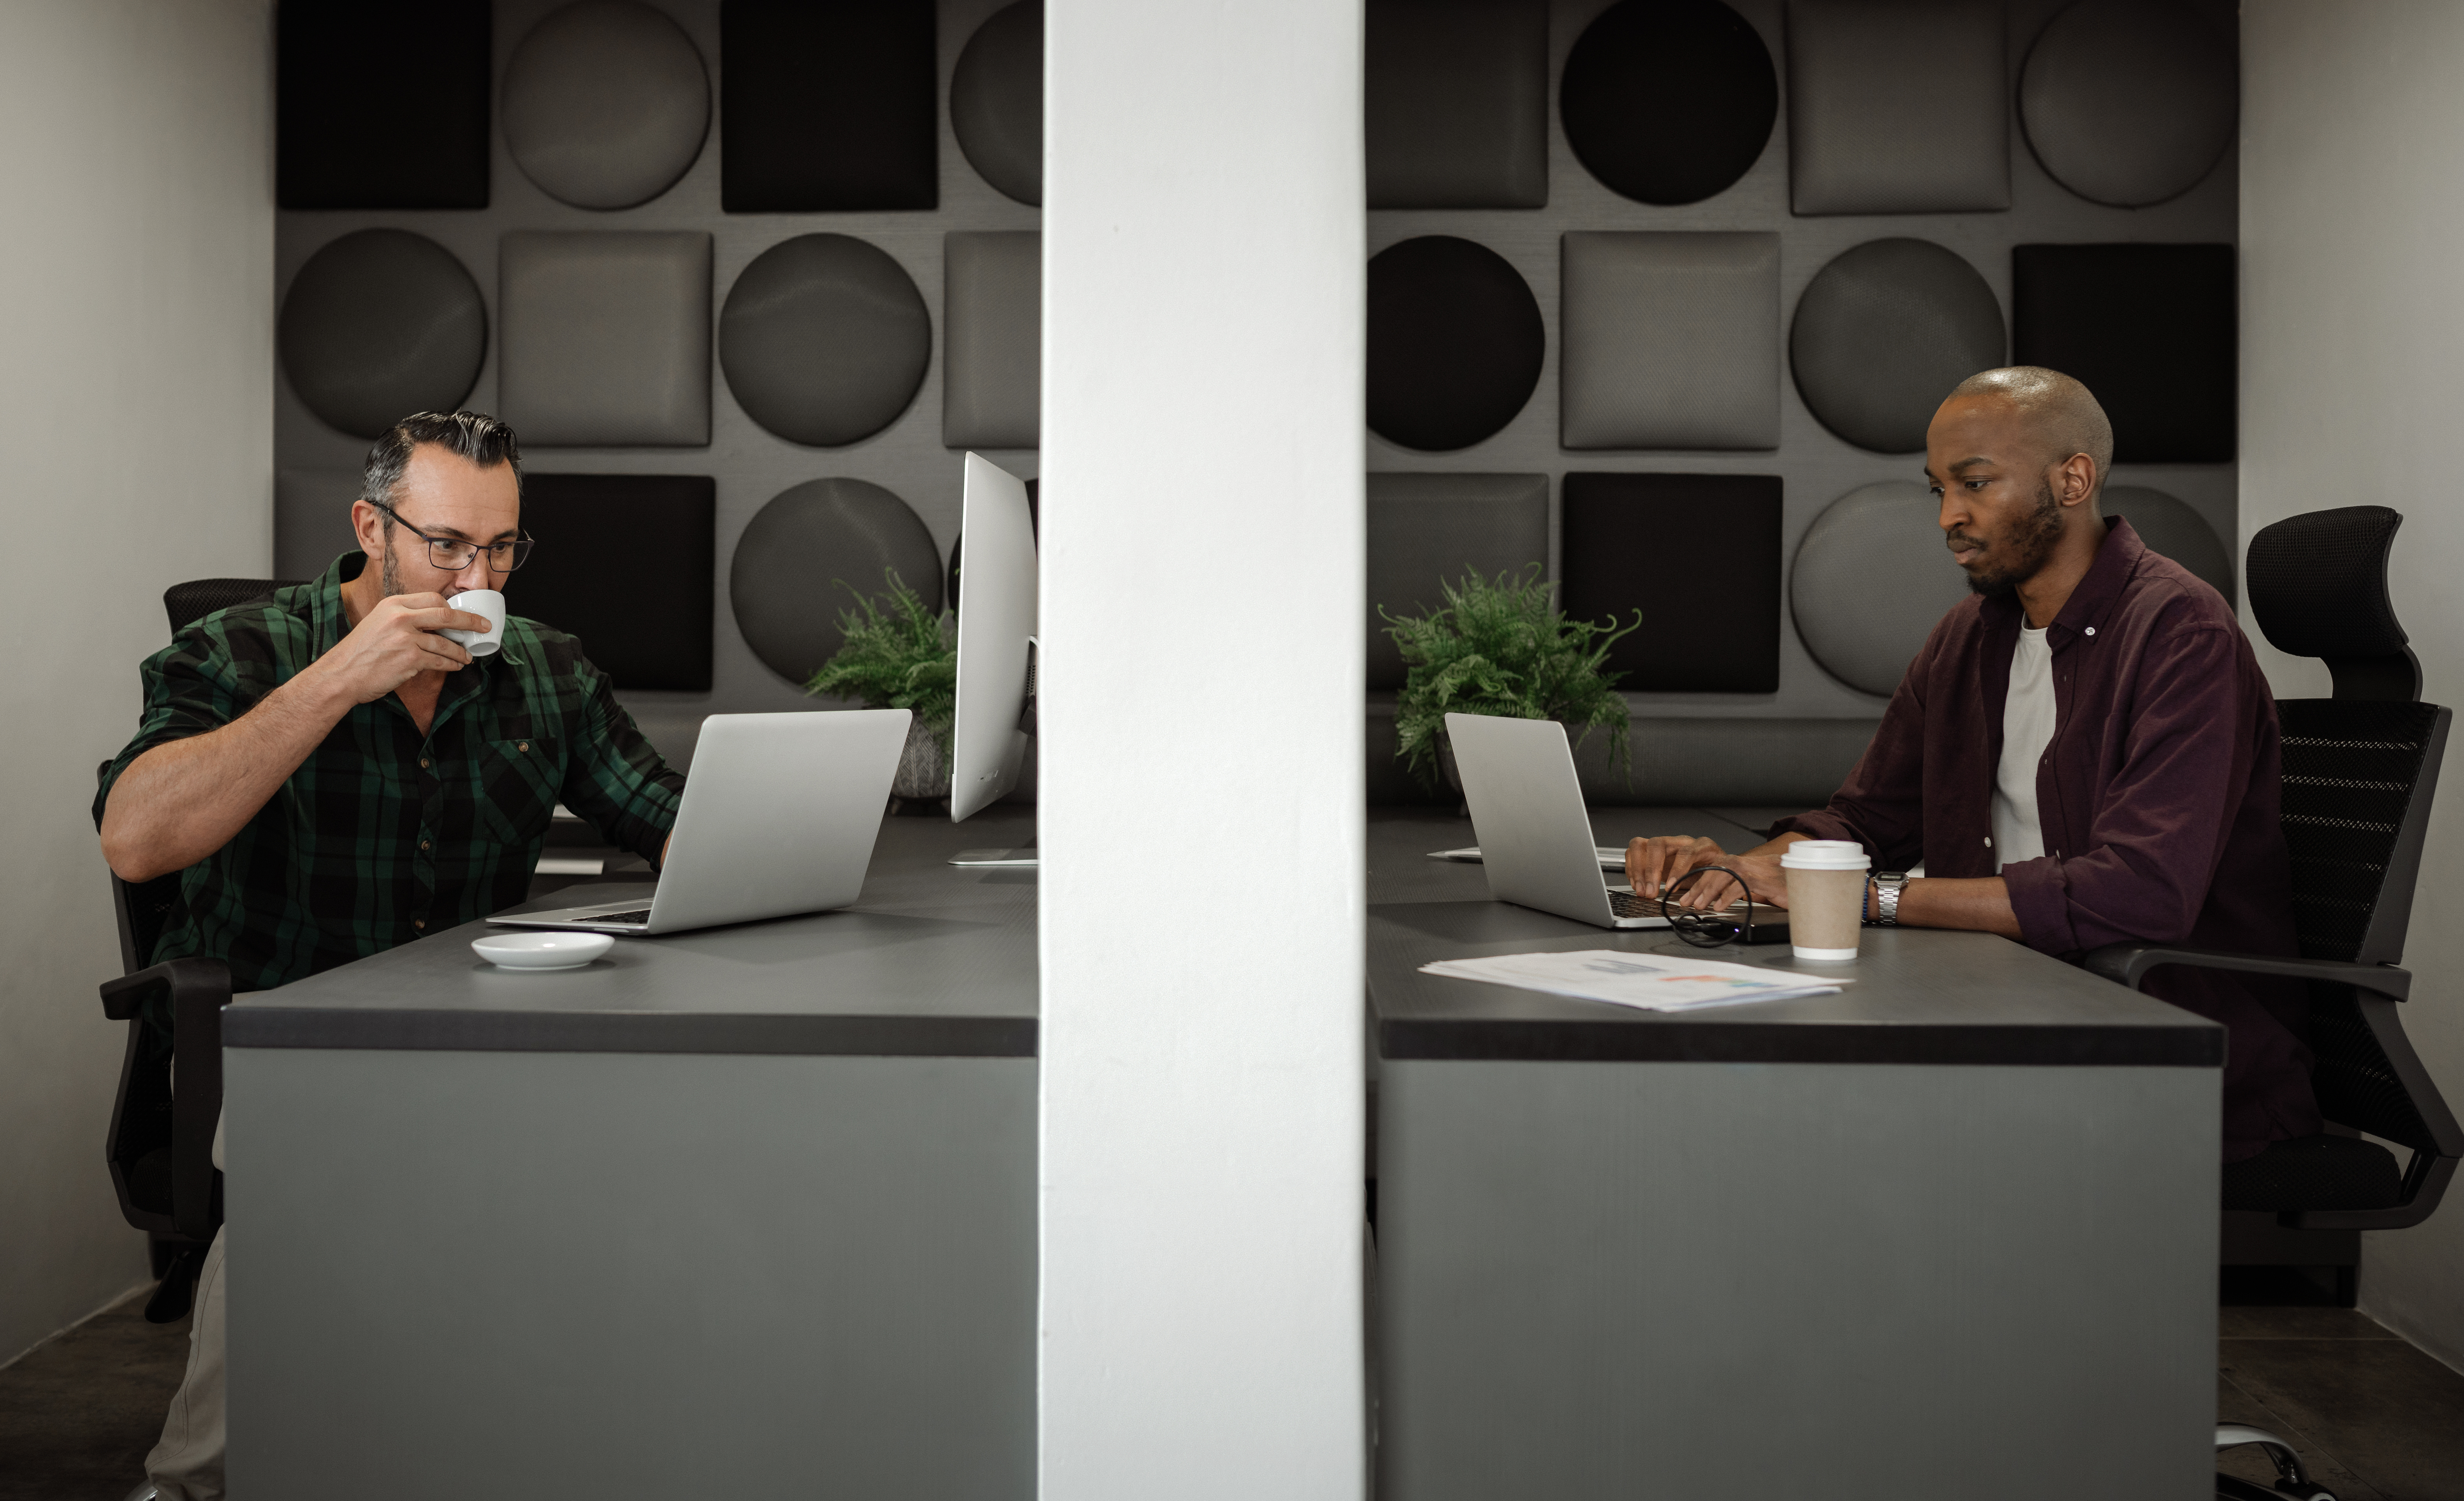 Two men working in private cubicles